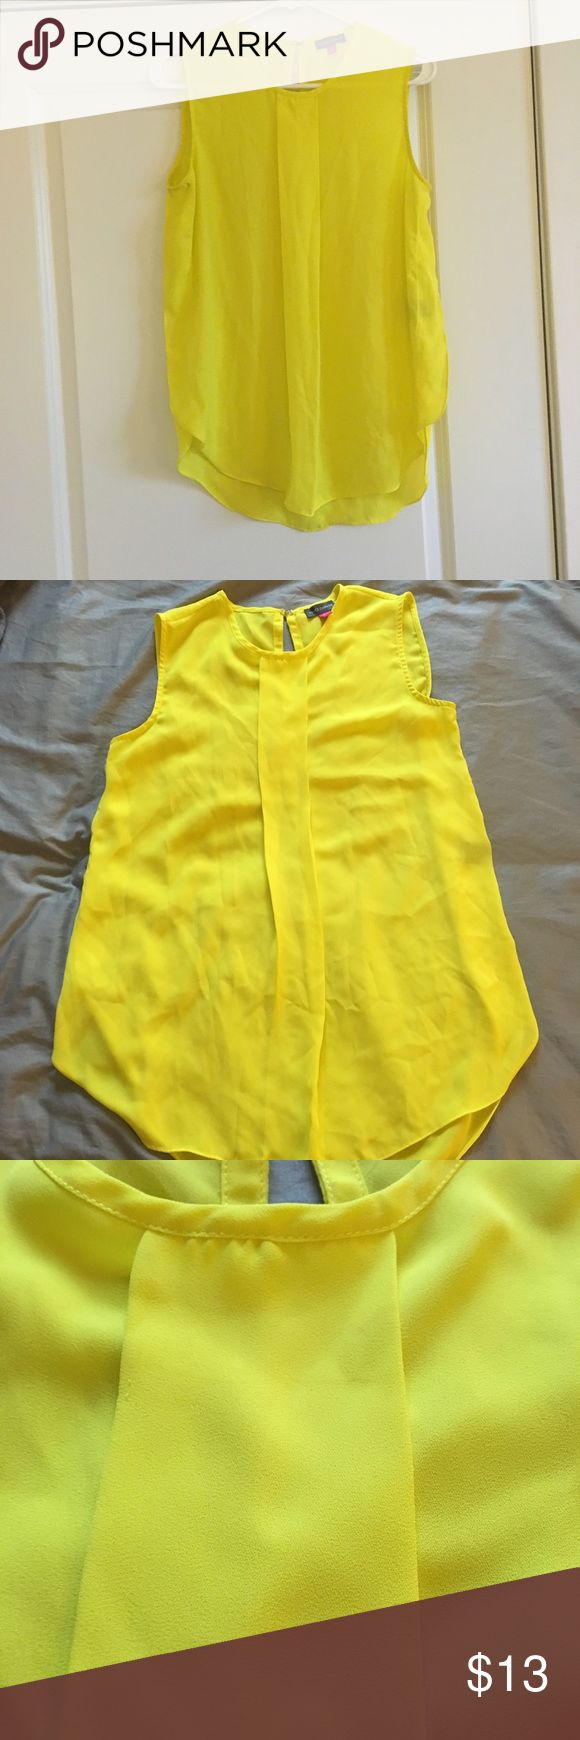 Vince Camuto Long Flowy Yellow Tank Top Sz Small Vibrant summery tank top for work & play! Minor pulls (pictured), price reflects. Vince Camuto Tops Tank Tops